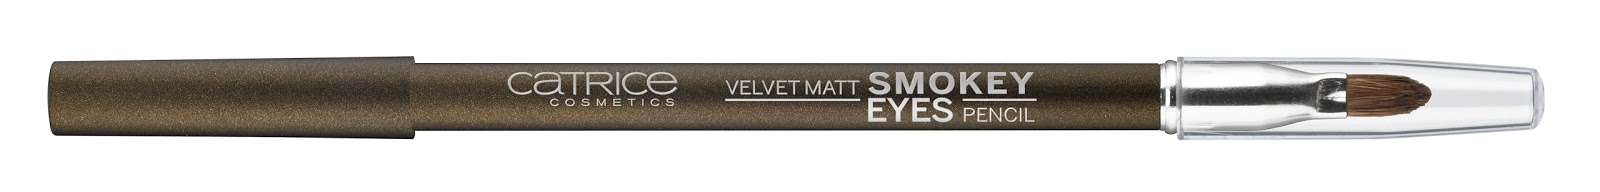 Catrice - Velvet Matt Smokey Eyes Pencil